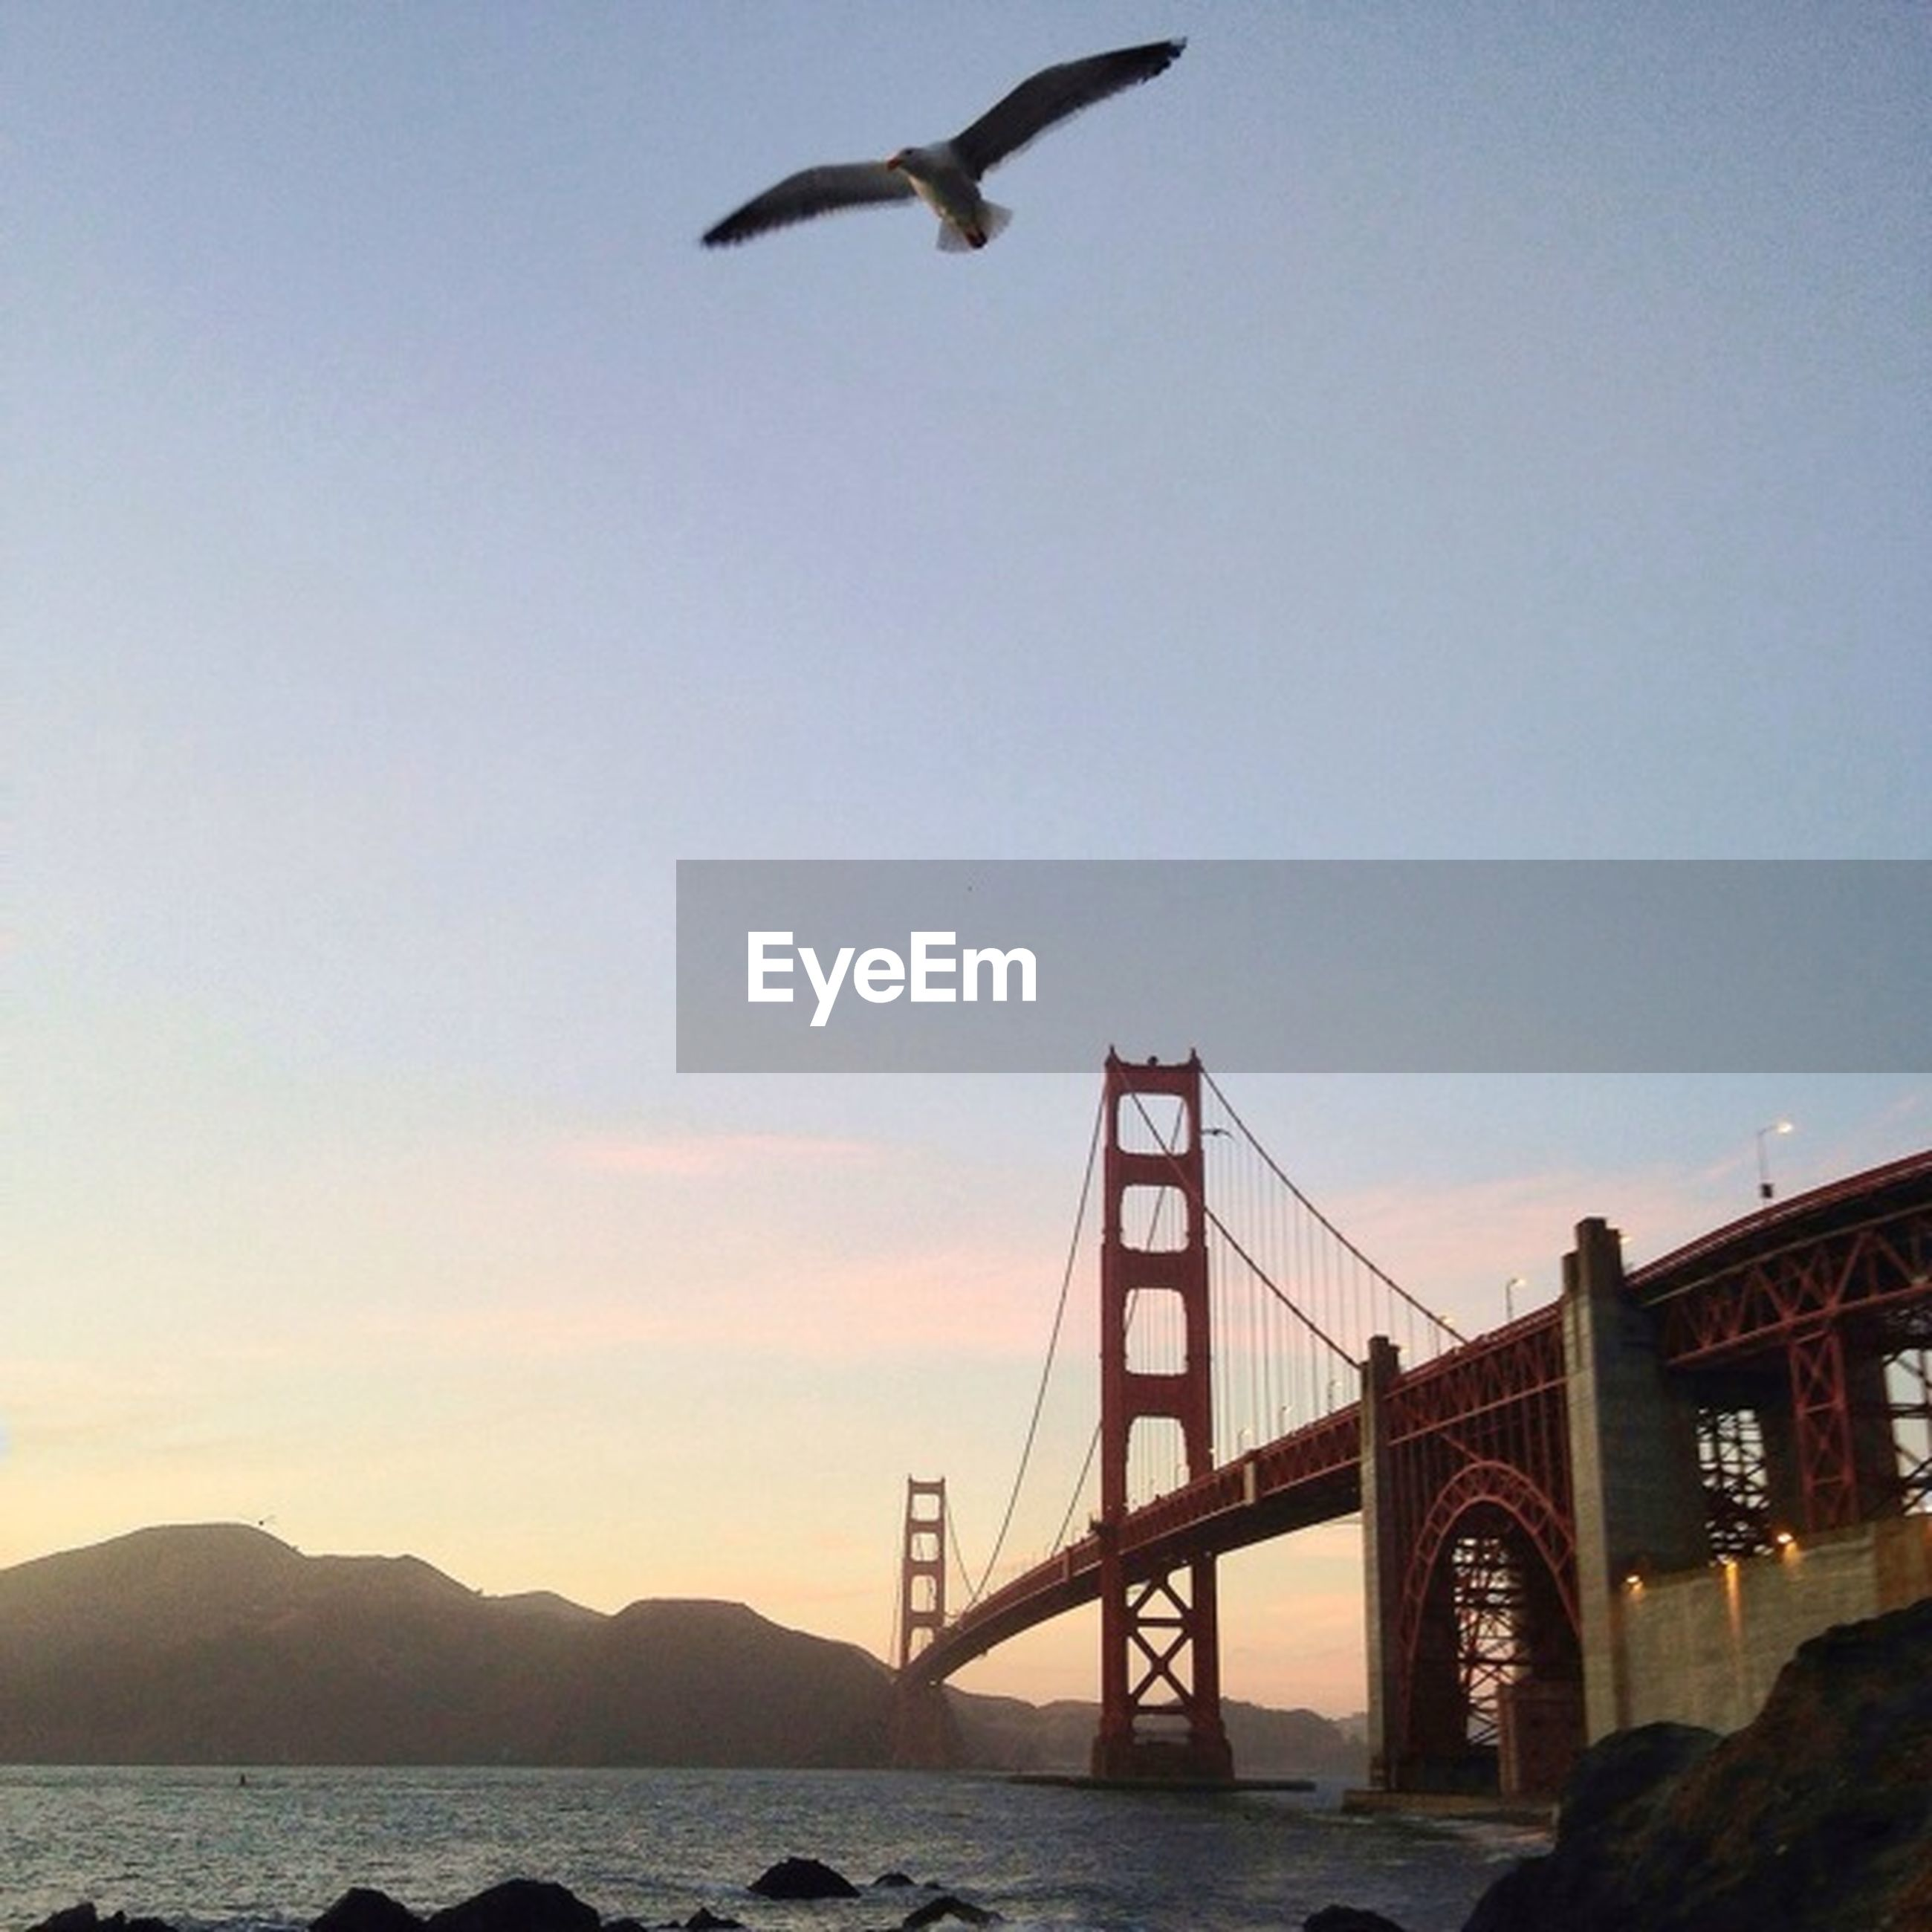 bird, flying, animal themes, connection, bridge - man made structure, built structure, animals in the wild, architecture, wildlife, one animal, transportation, engineering, sky, seagull, clear sky, low angle view, bridge, mid-air, water, outdoors